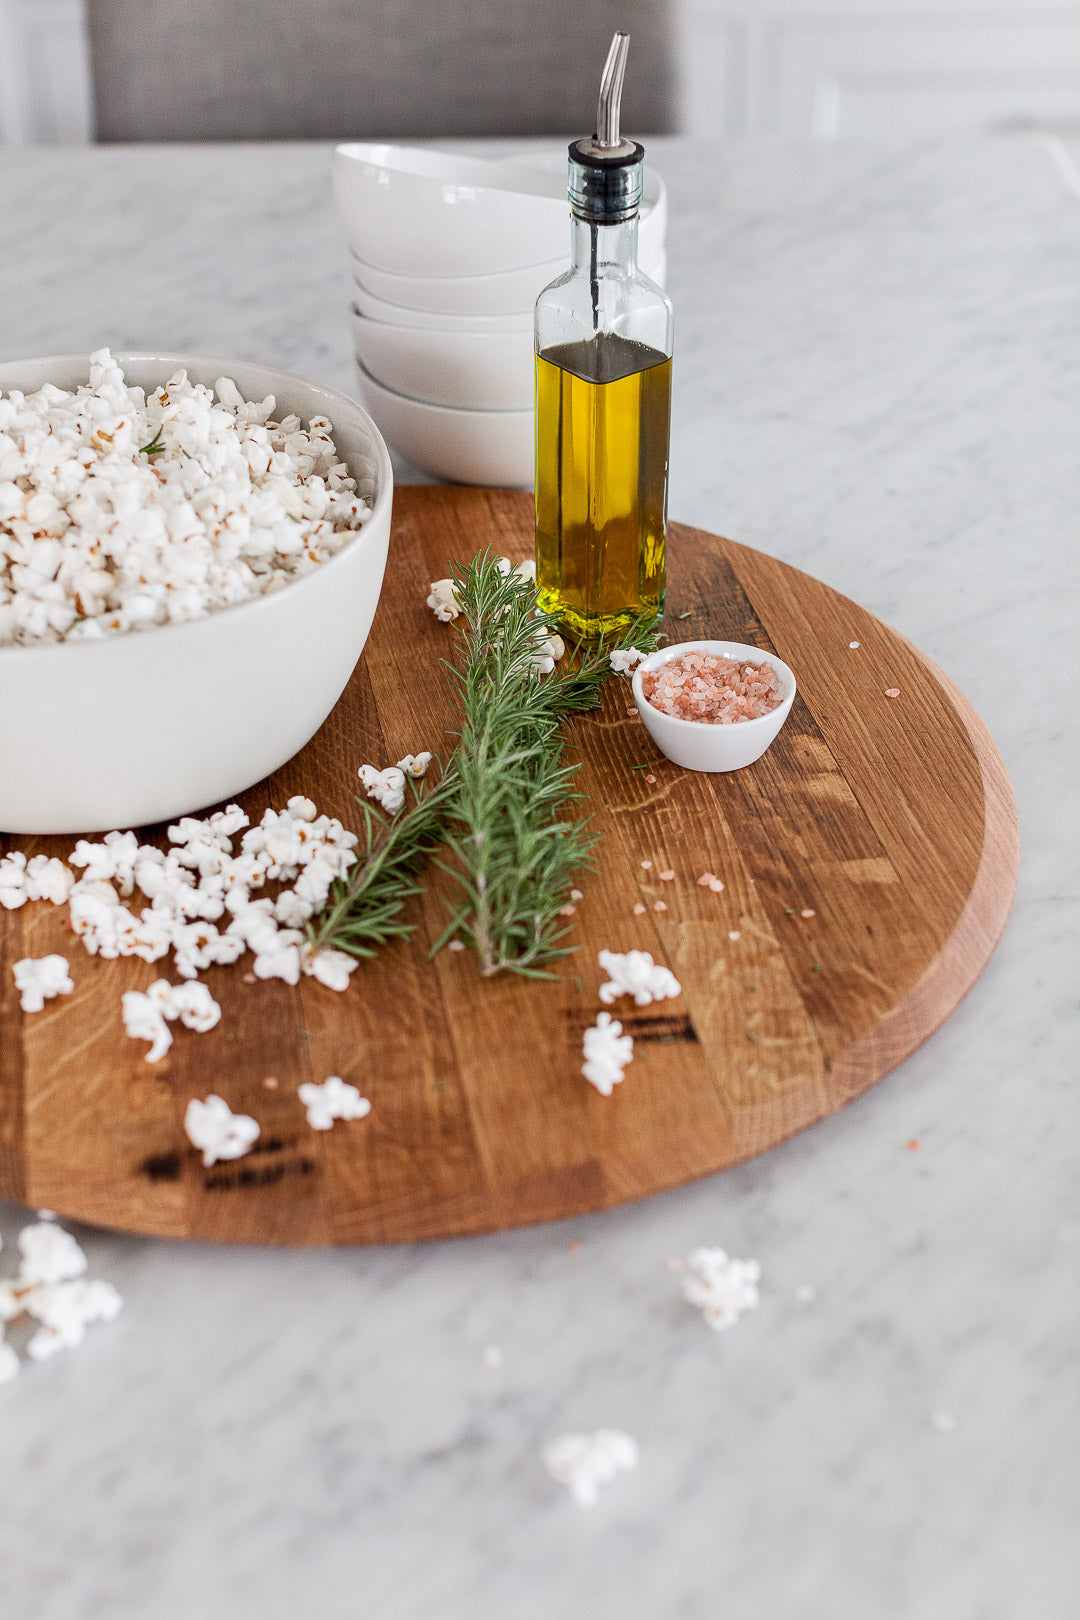 Rosemary, Sea Salt & Olive Oil Popcorn as shared on the Charlotte Today Show!